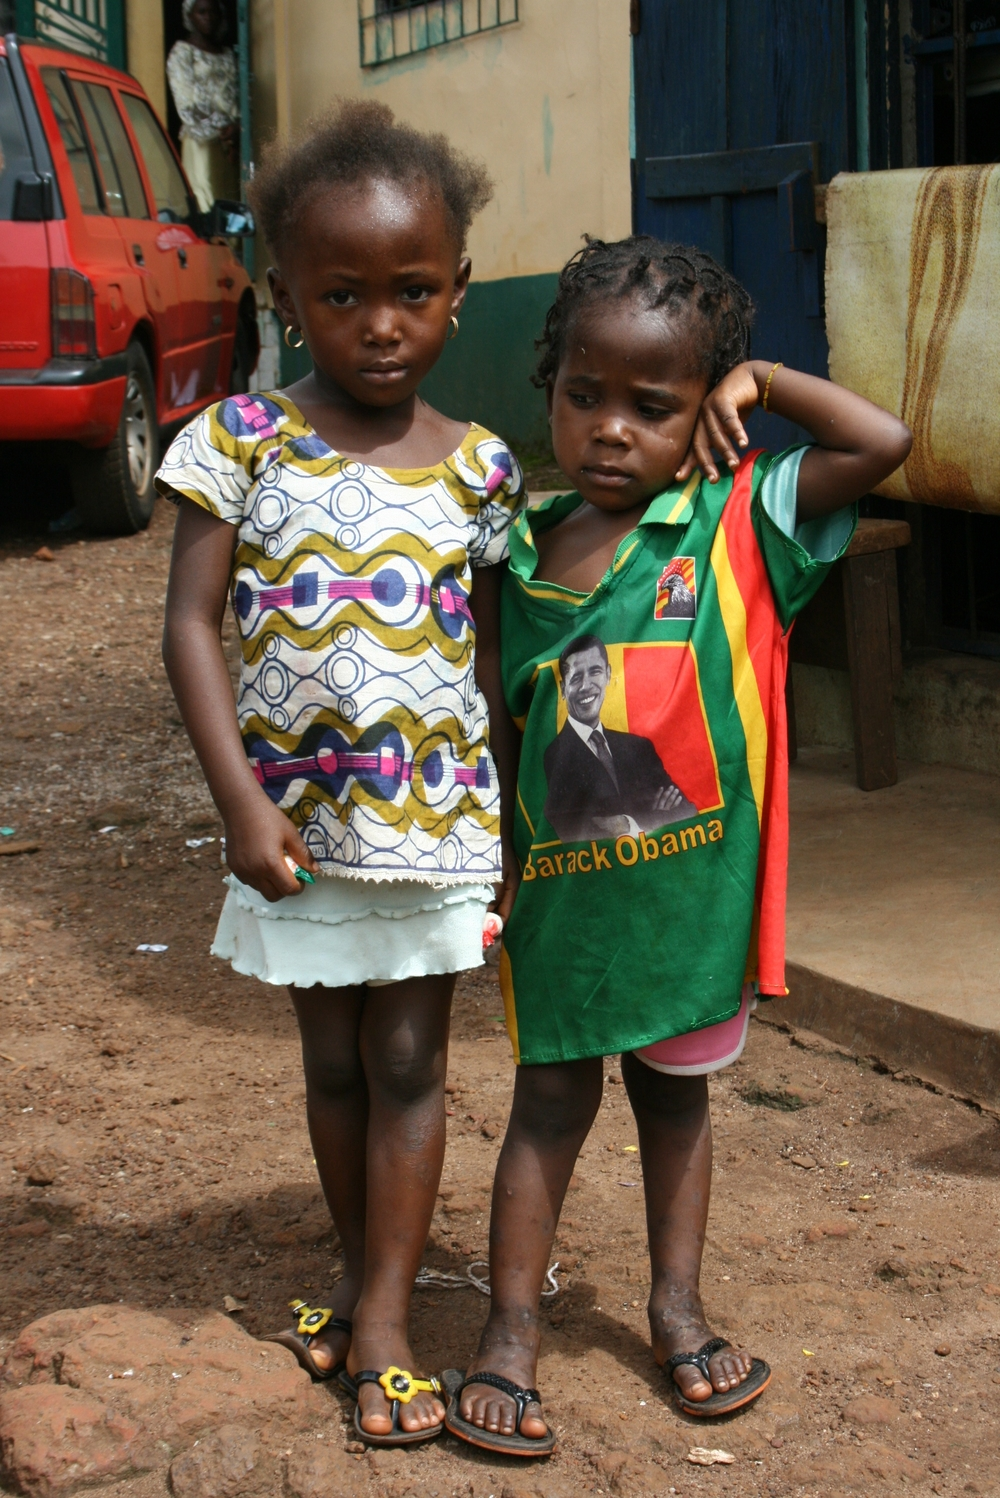 Children in the Gbessia Port neighbourhood of the Guinea capital Conakry. August 2009